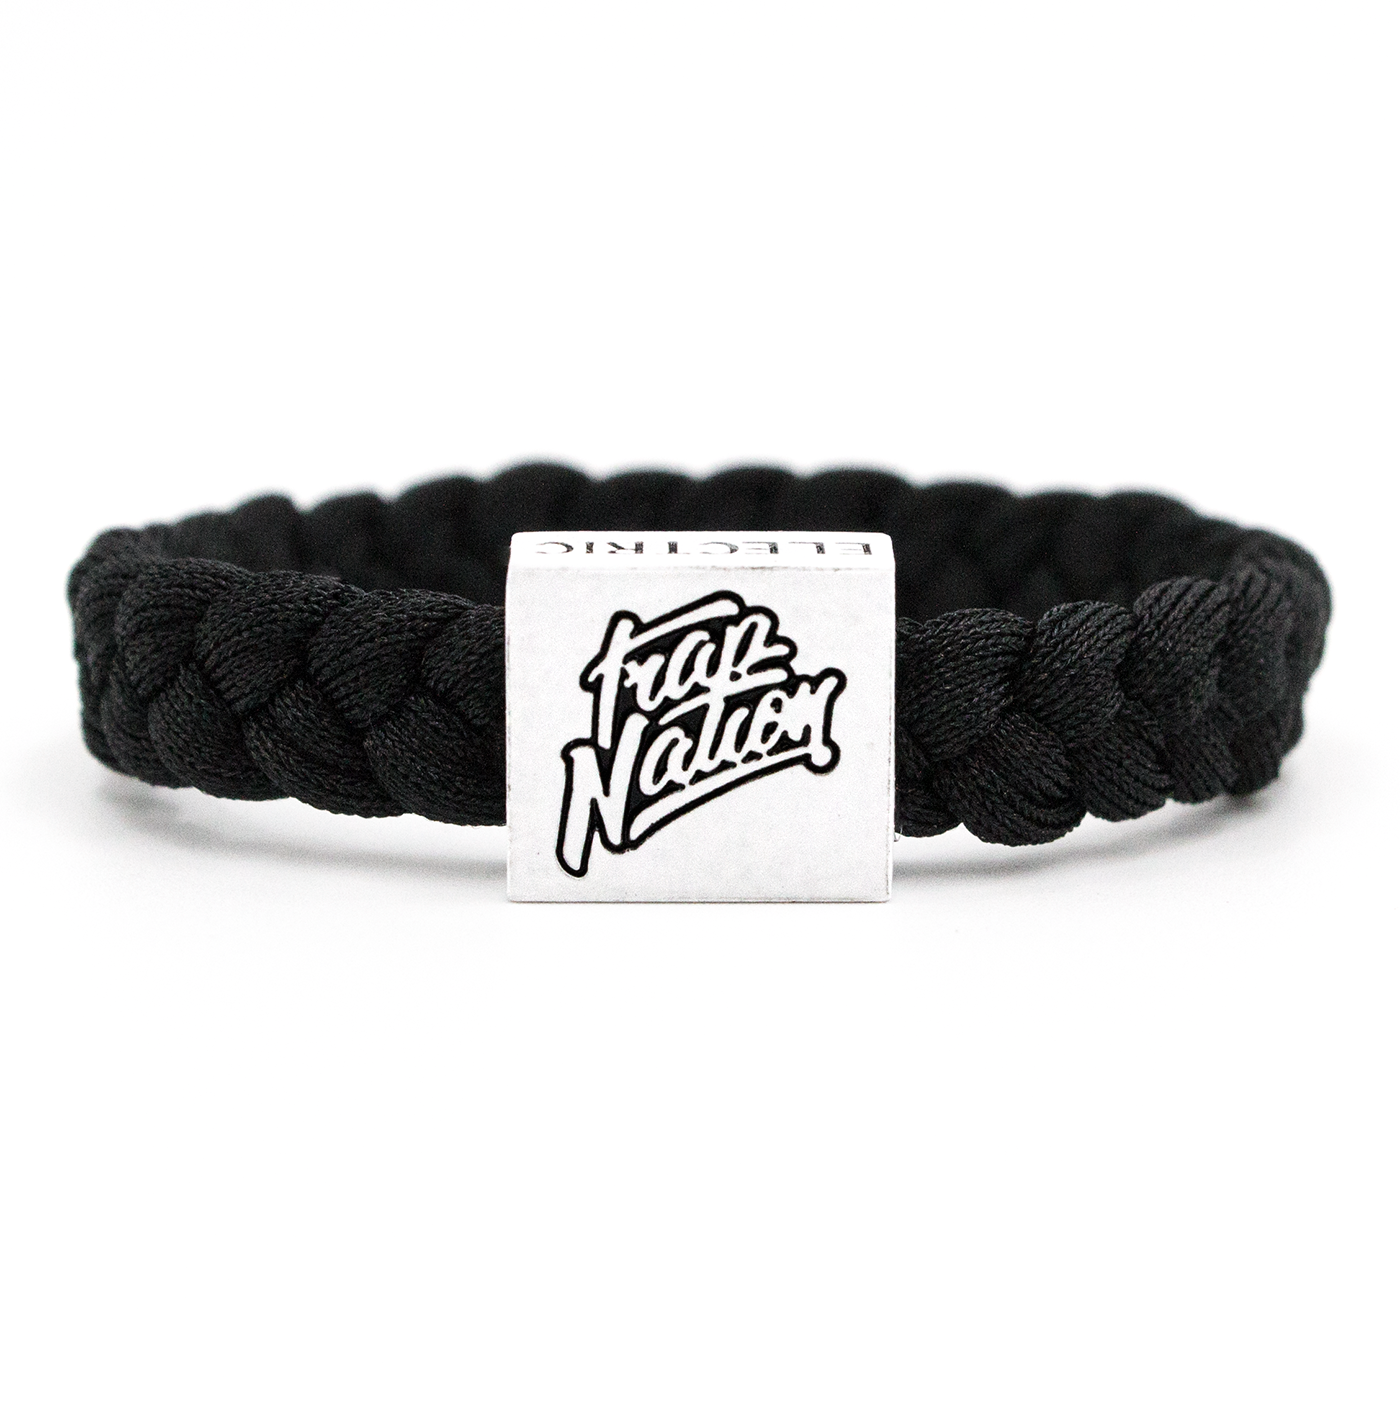 Trap Nation Bracelet